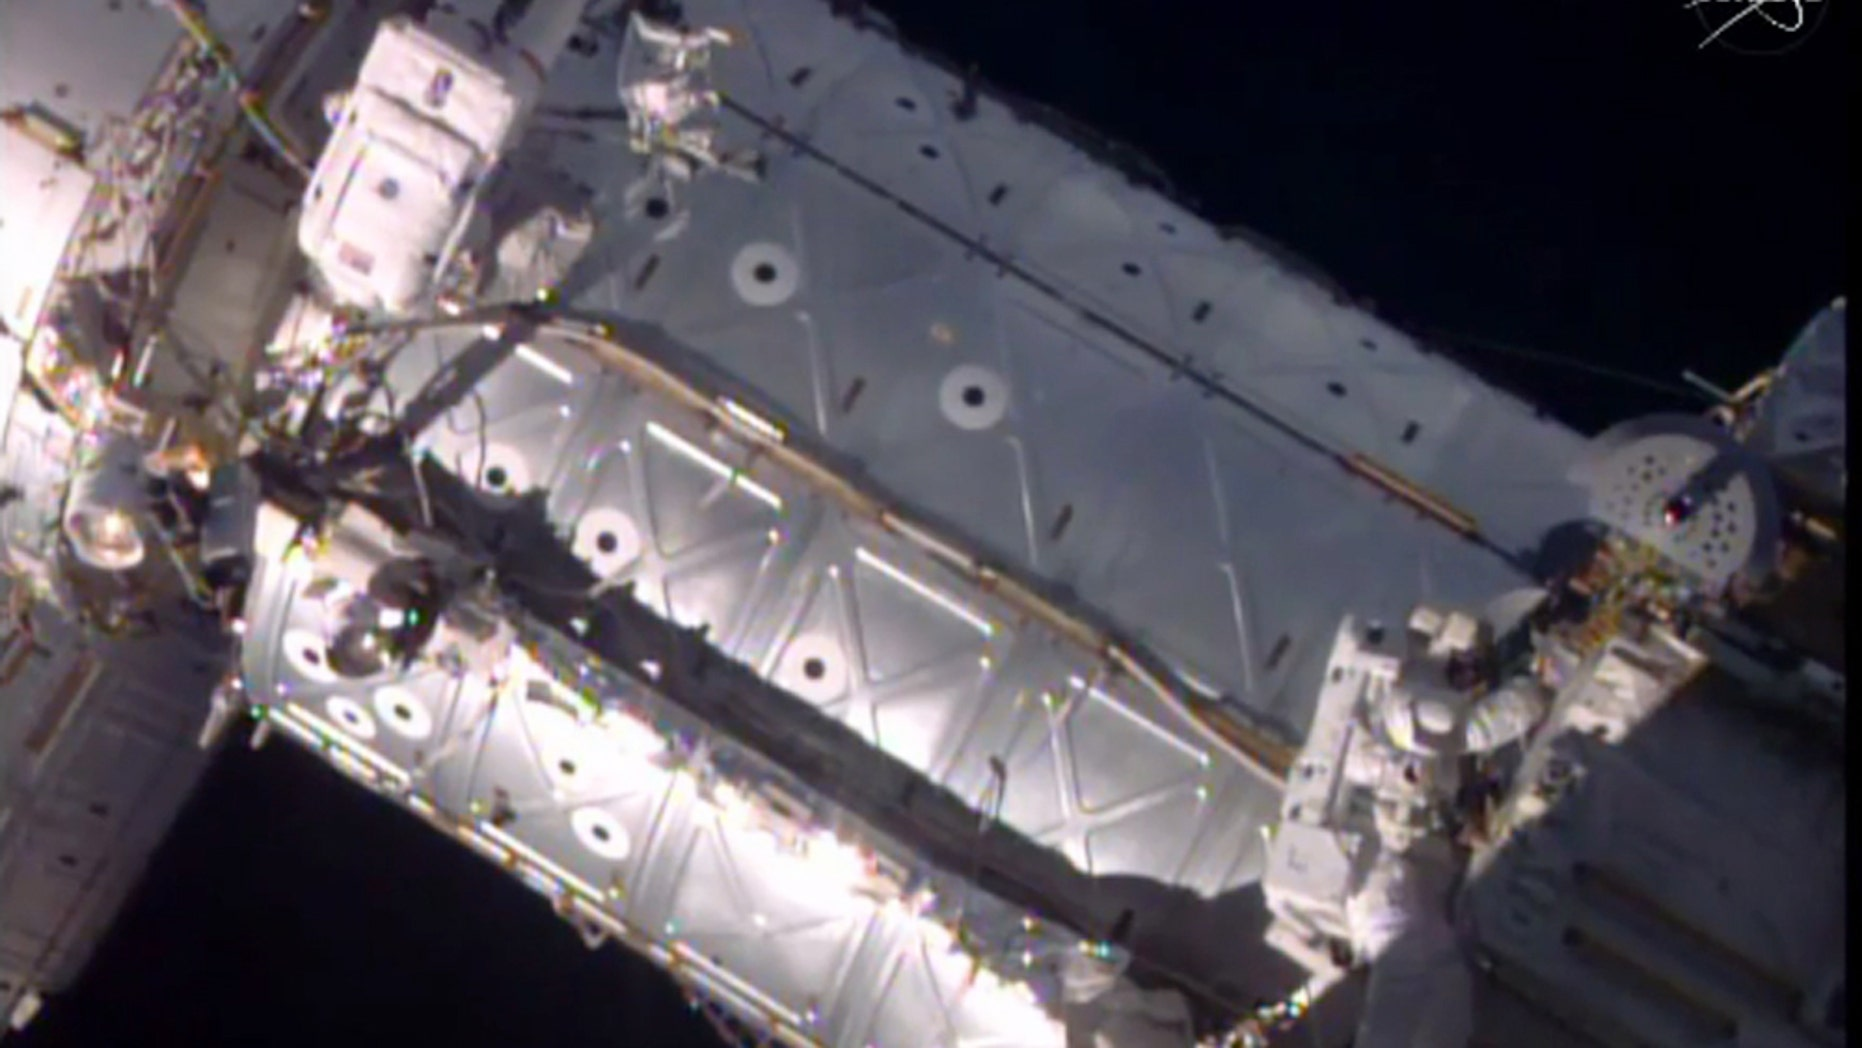 This image provided by NASA shows American astronauts Jeffrey Williams, left, and Kate Rubins taking a spacewalk to hook up a docking port outside the International Space Station on Friday, Aug. 19, 2016.  The docking port will be used by future commercial crew capsules.  SpaceX delivered this new gateway last month.   (NASA via AP)